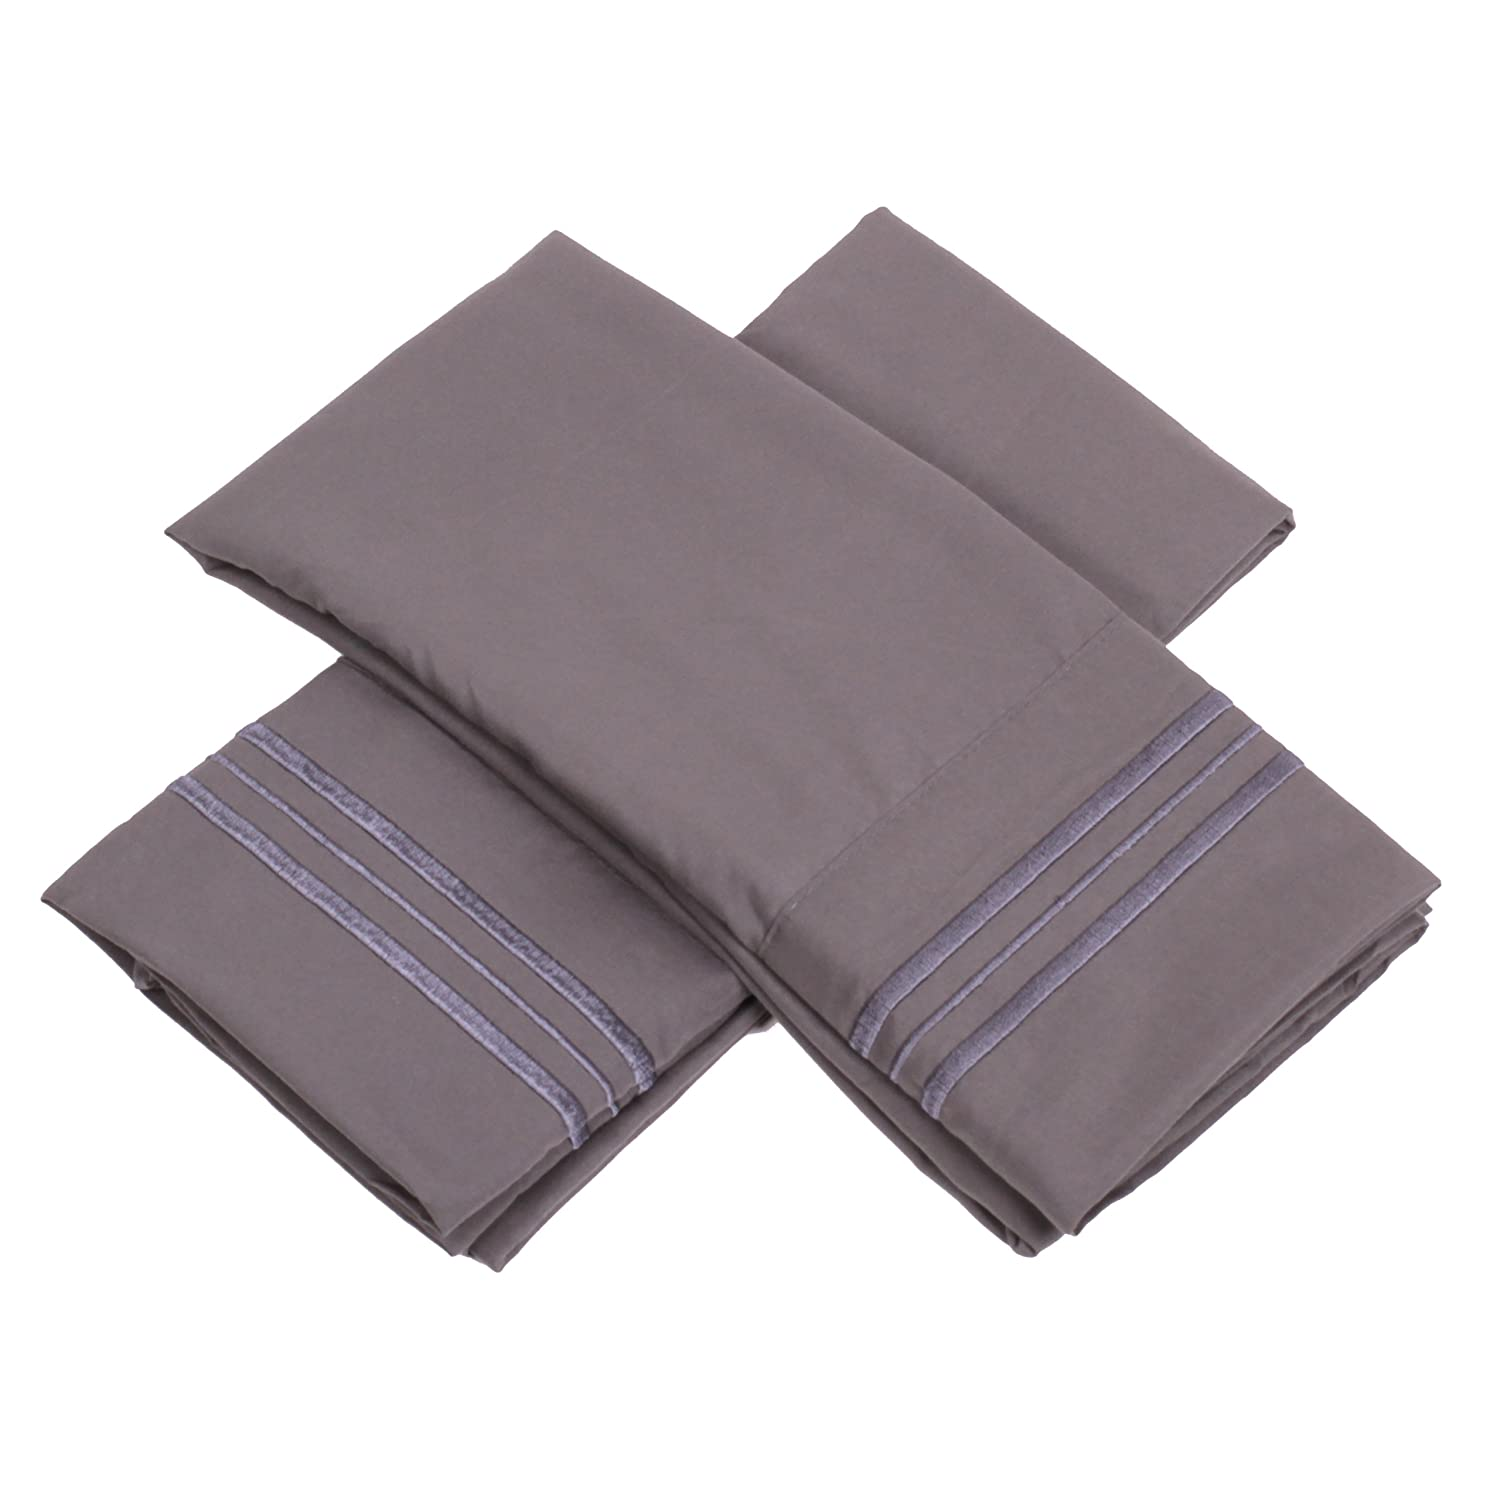 Sweet Home Collection 1500 Series Egyptian Quality Deep Pocket Pillowcase, King, Gray